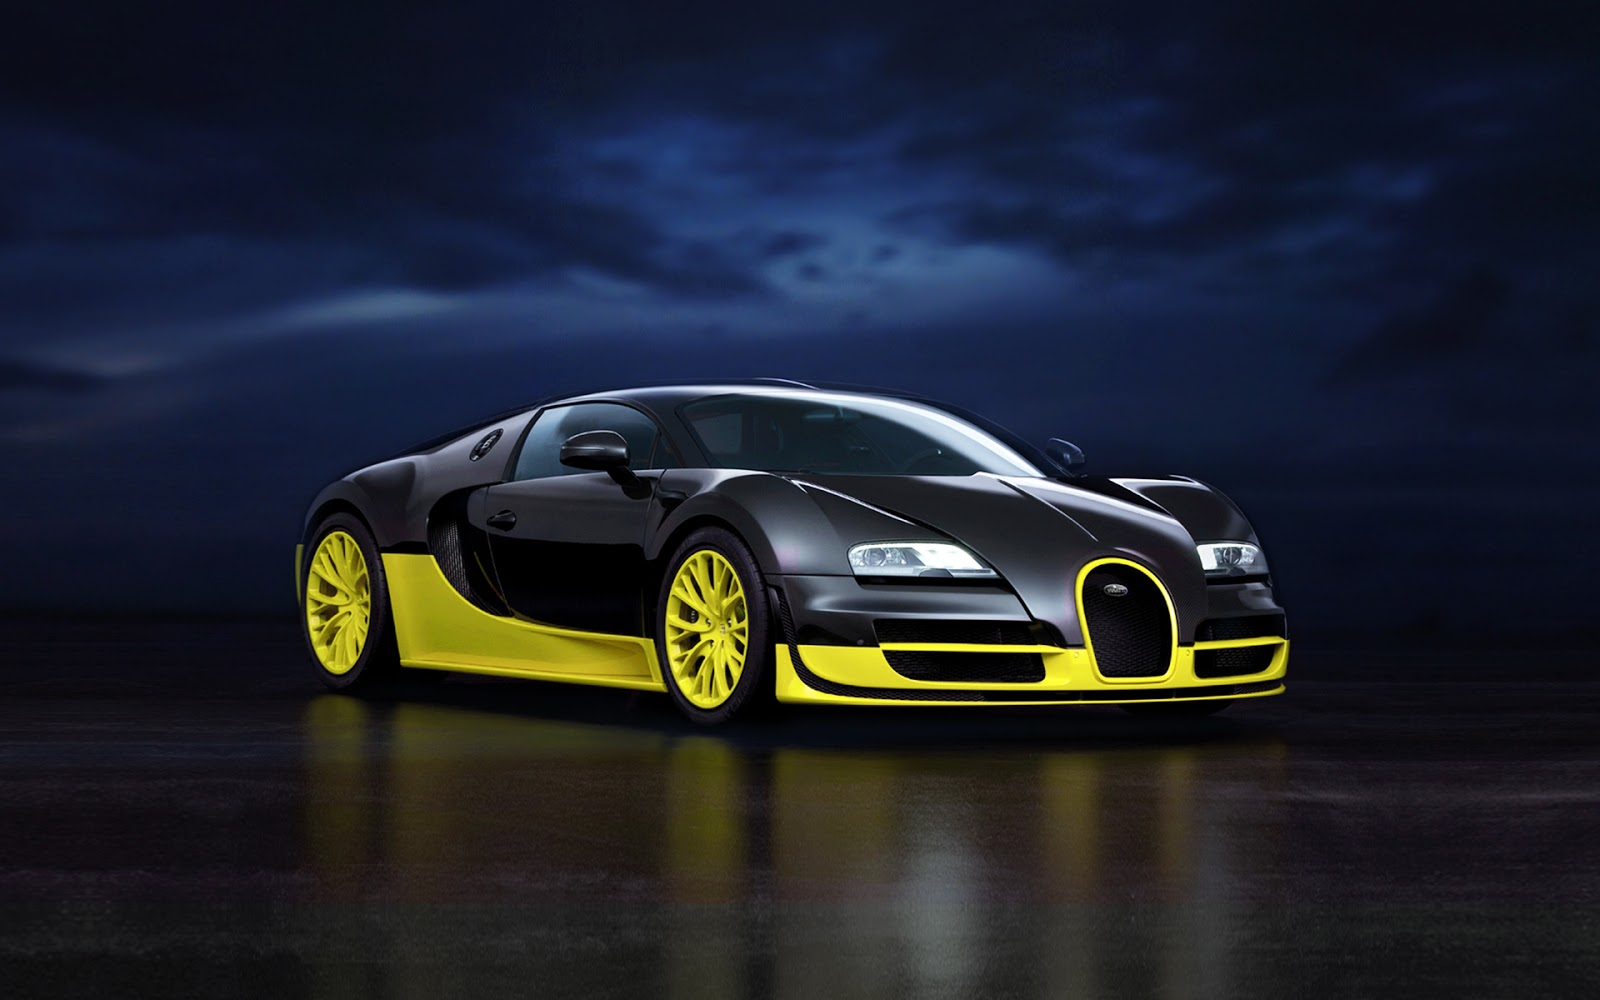 Full Hd Sports Car Wallpapers: Sports Cars: Bugatti Veyron Super Sport,Bugatti Veyron